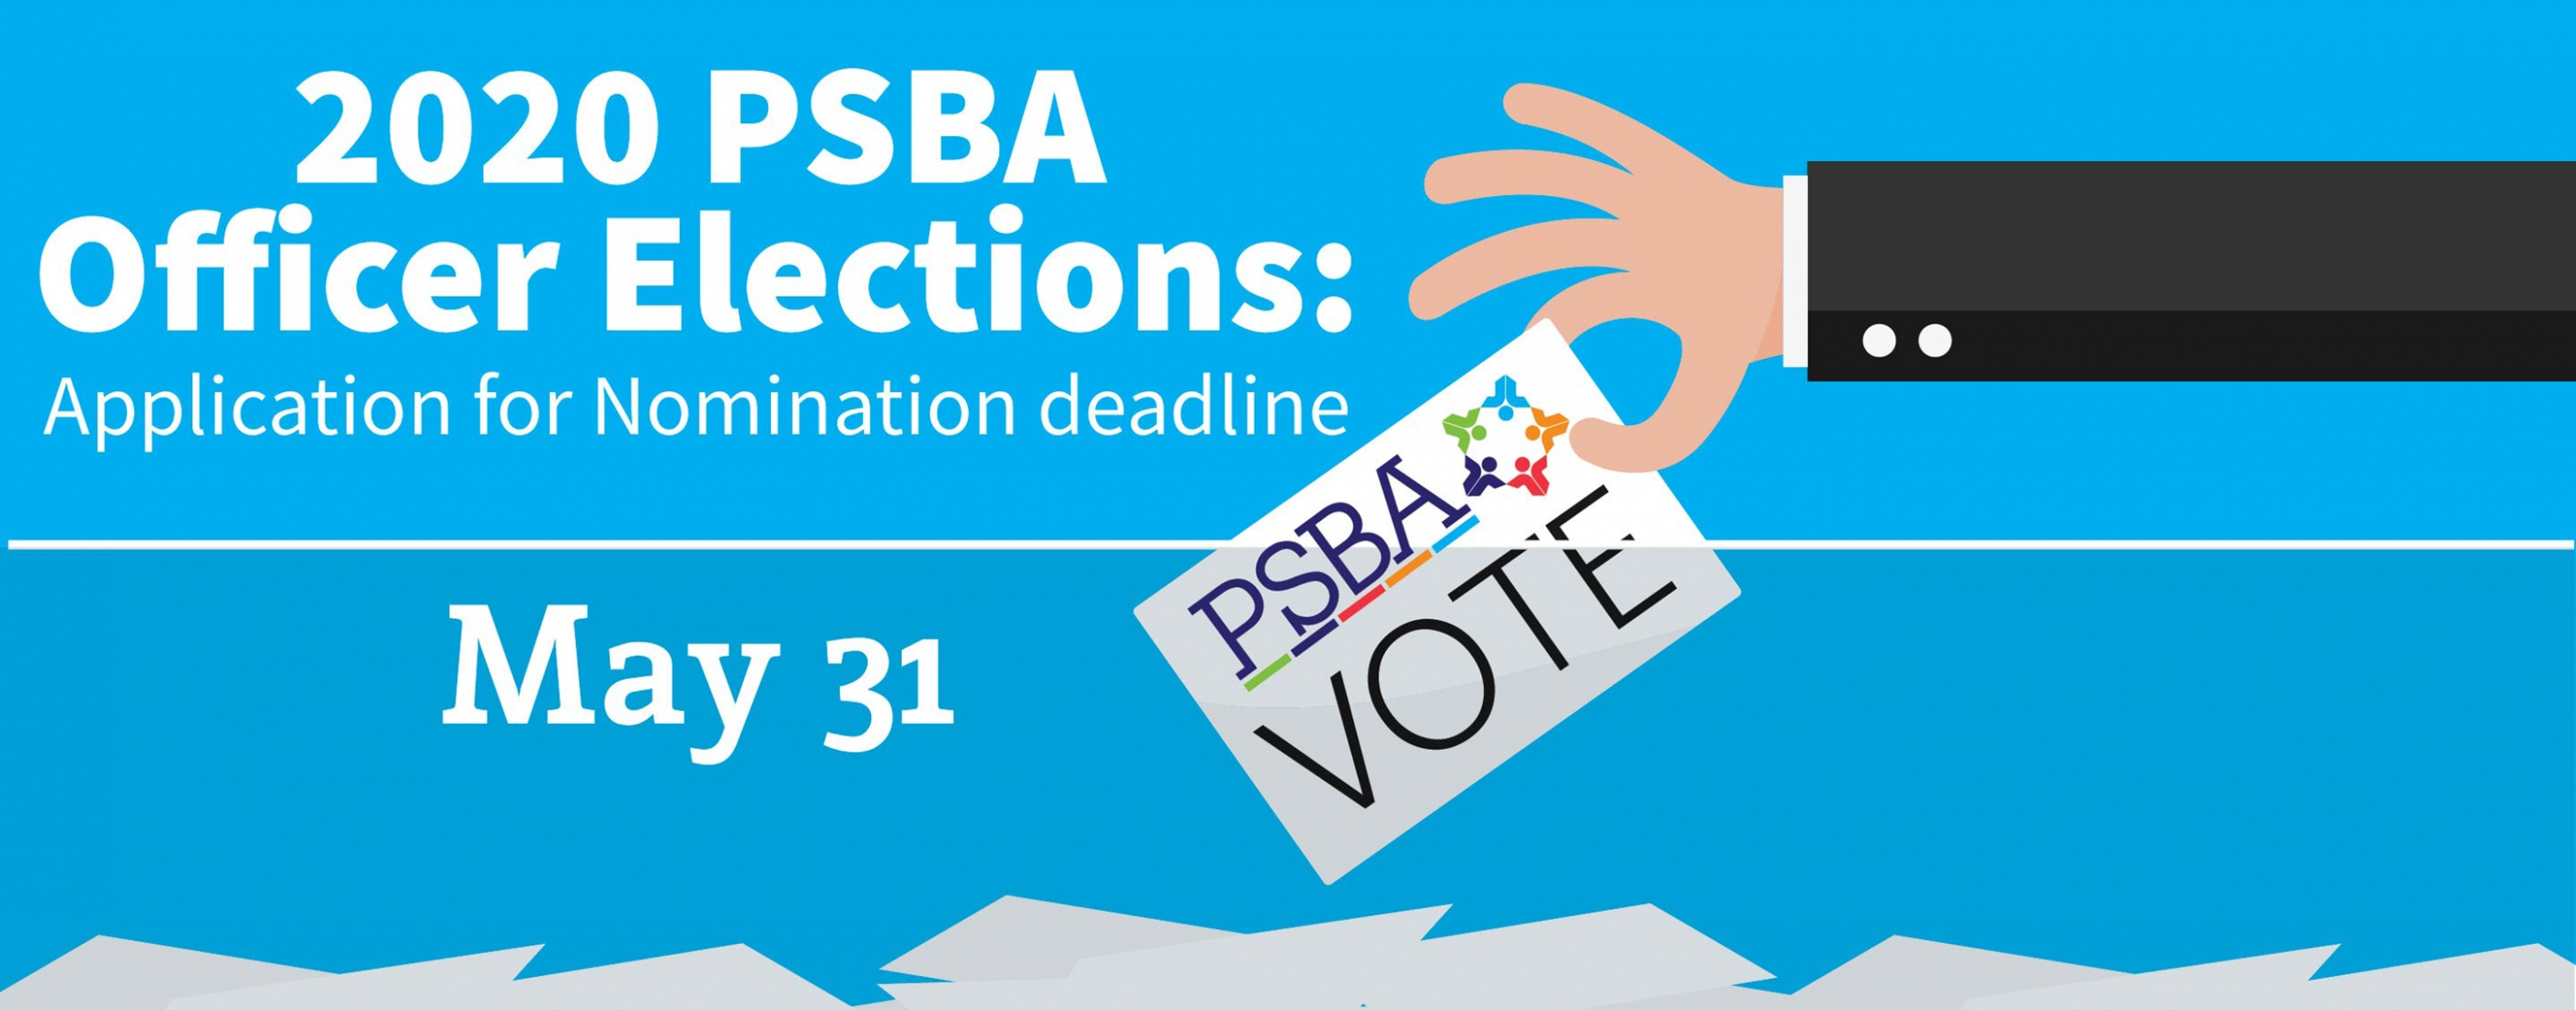 PSBA 2020 Officer Elections